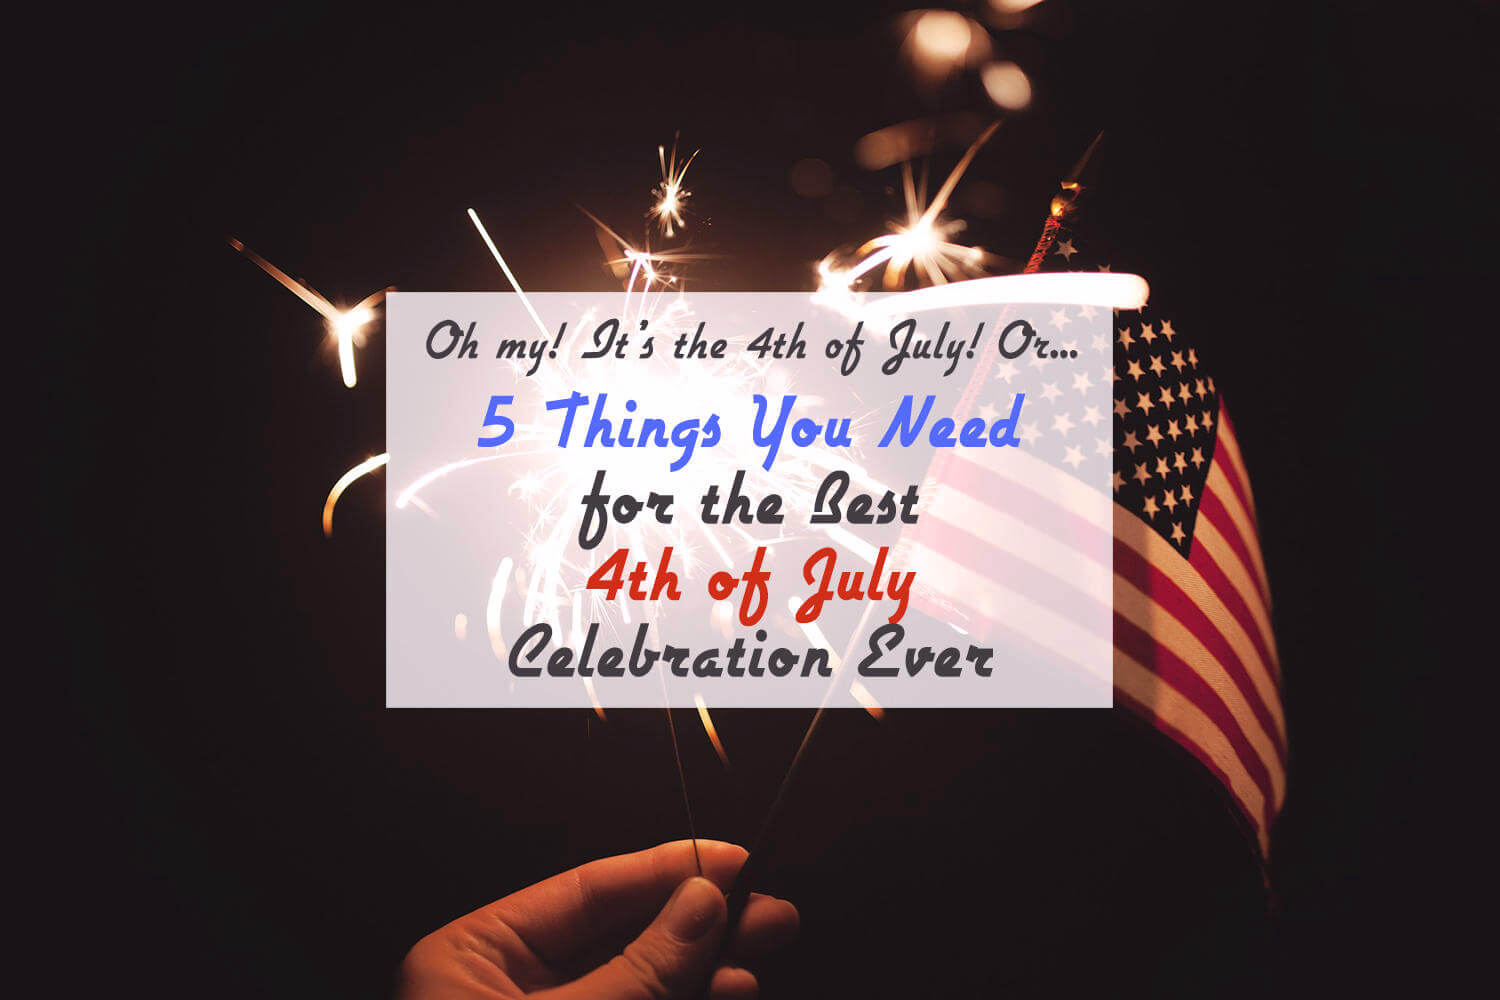 5 Things You Need for the Best 4th of July Celebration Ever